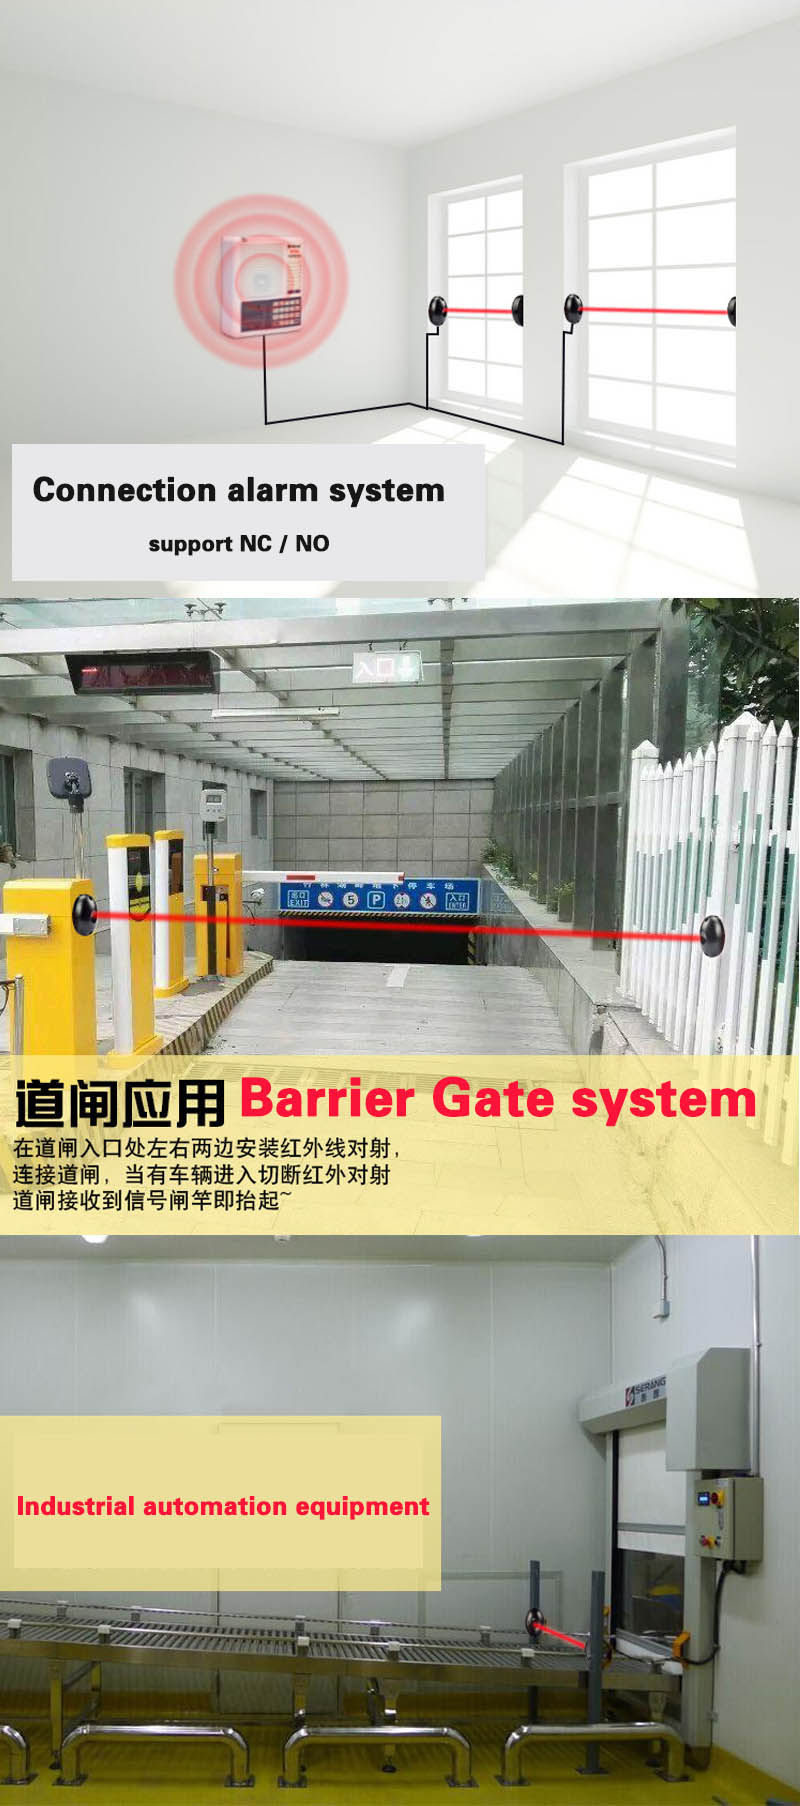 Galo Door Sensor Compatible With Bft Came Faac Gate Opener Barrier Infrared Intrusion 3